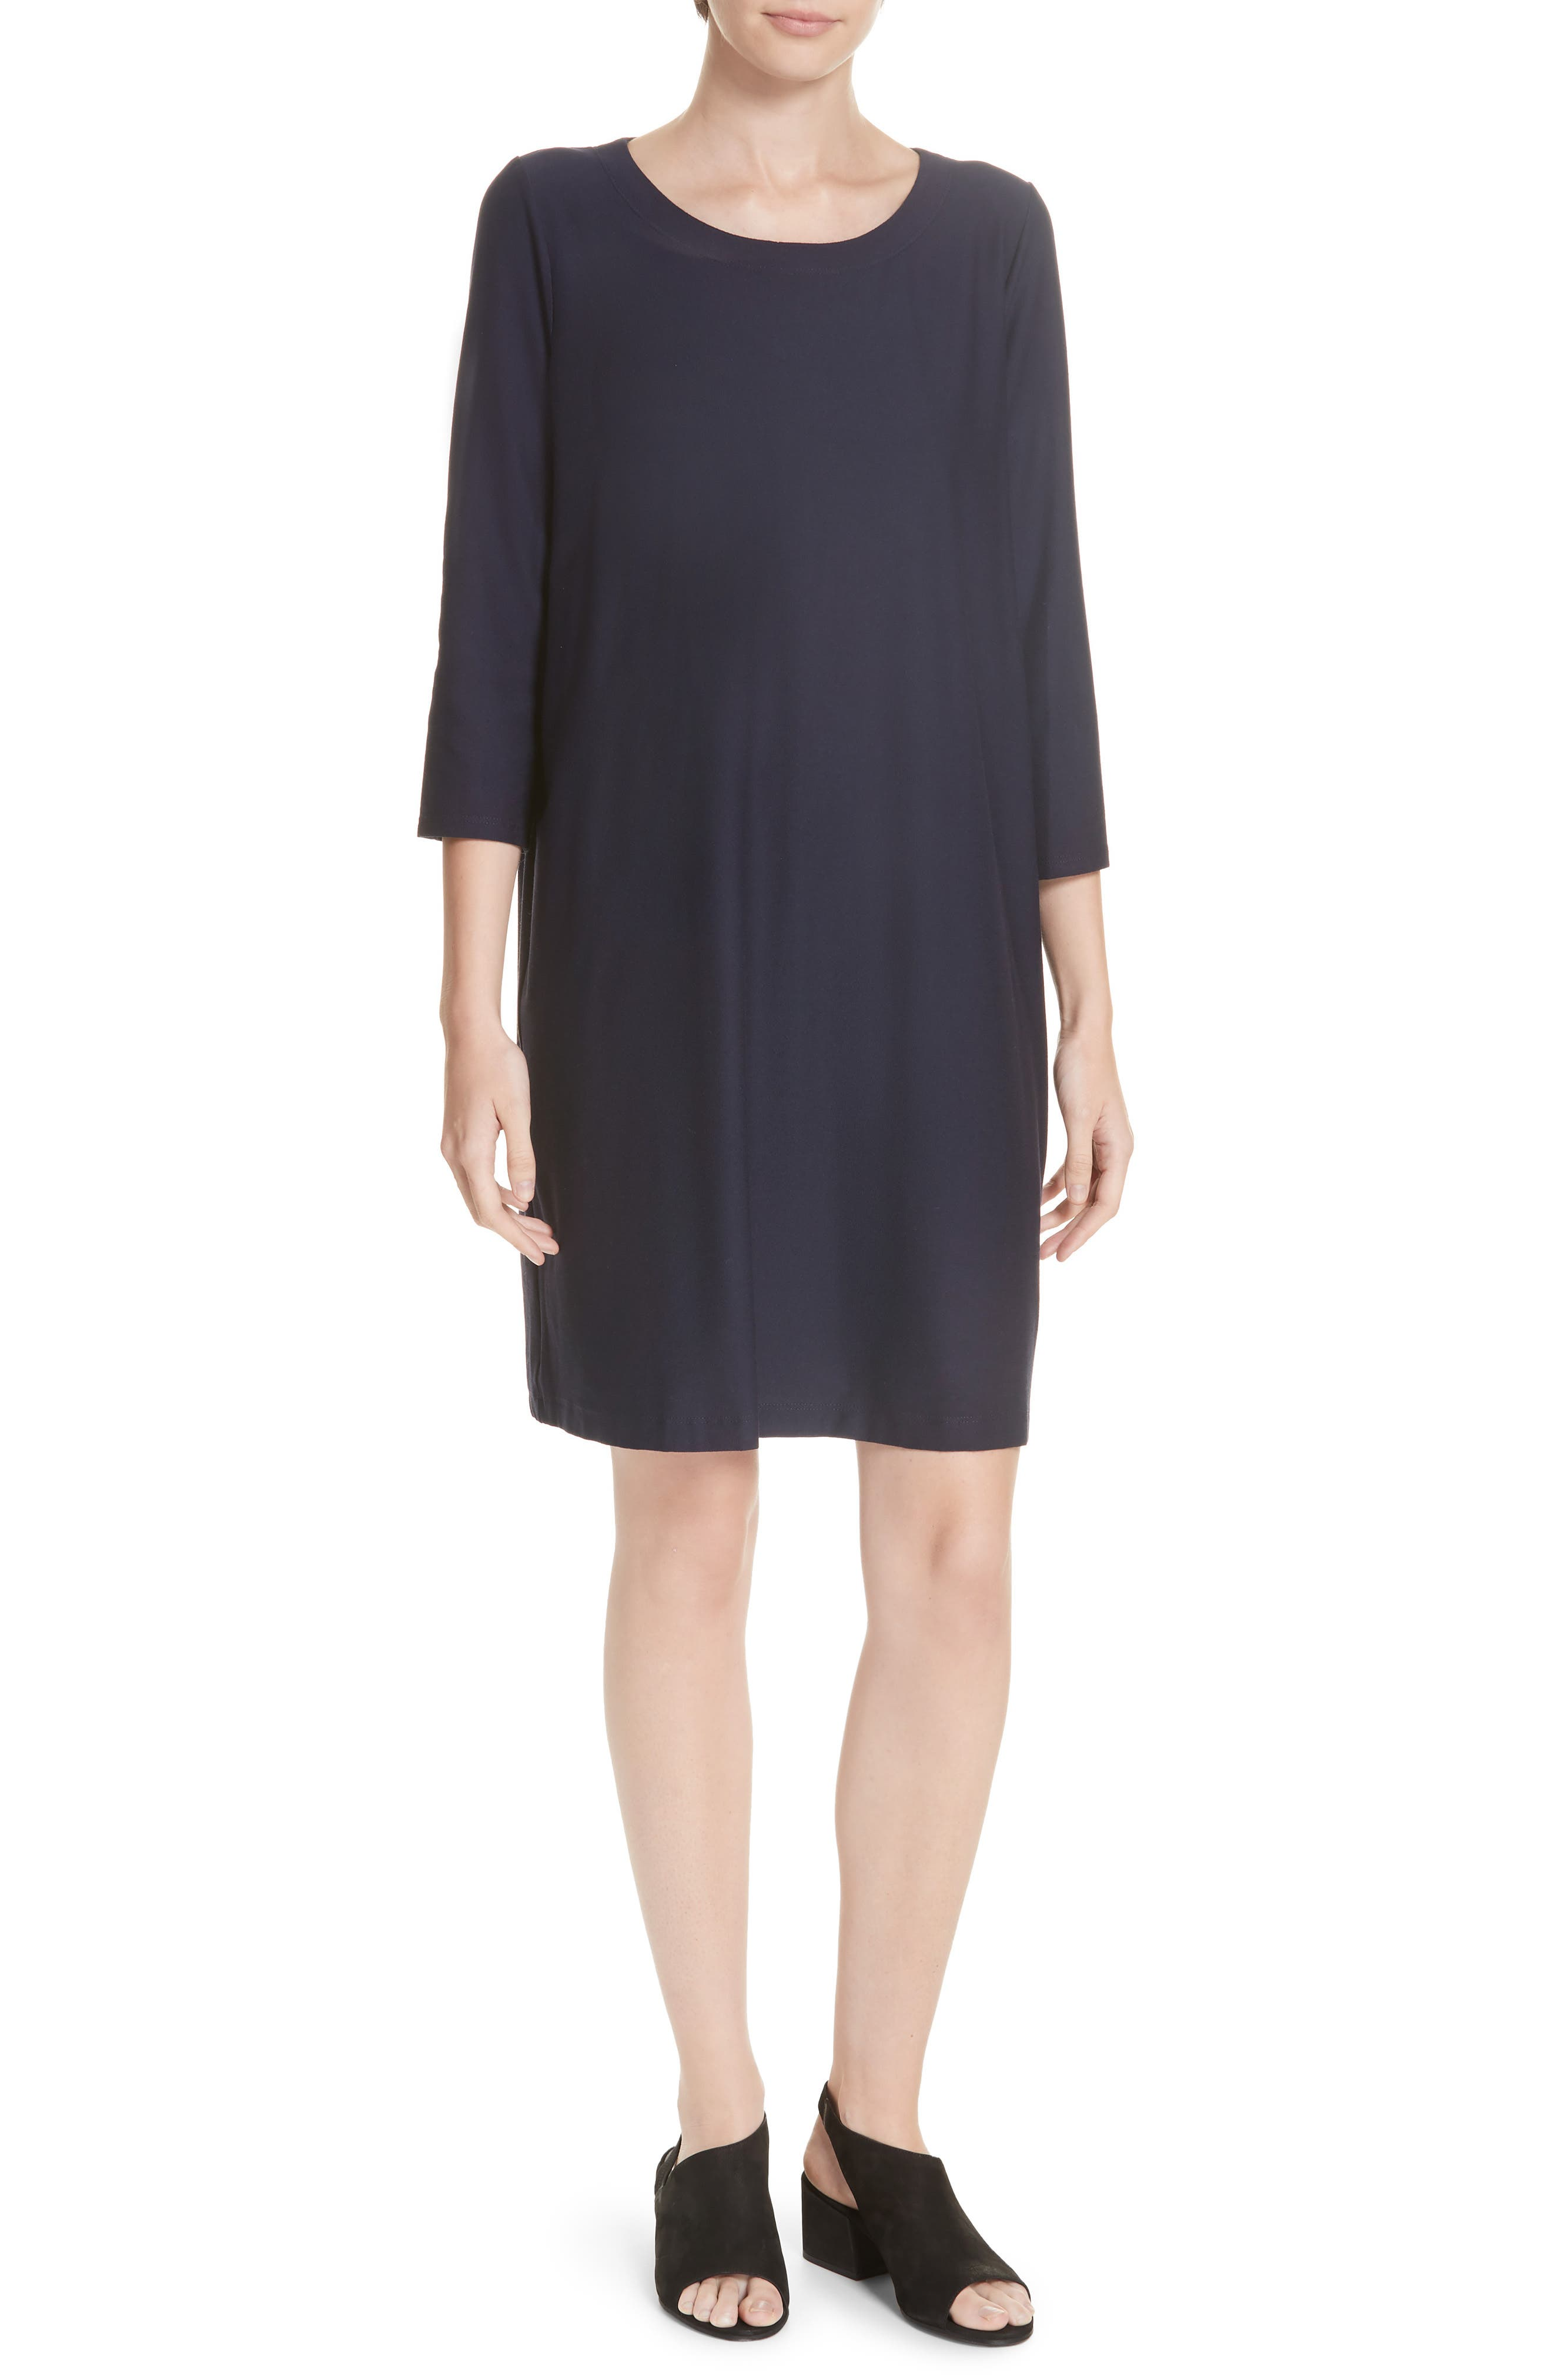 Scoop Neck Knee Length Shift Dress,                             Main thumbnail 1, color,                             MIDNIGHT